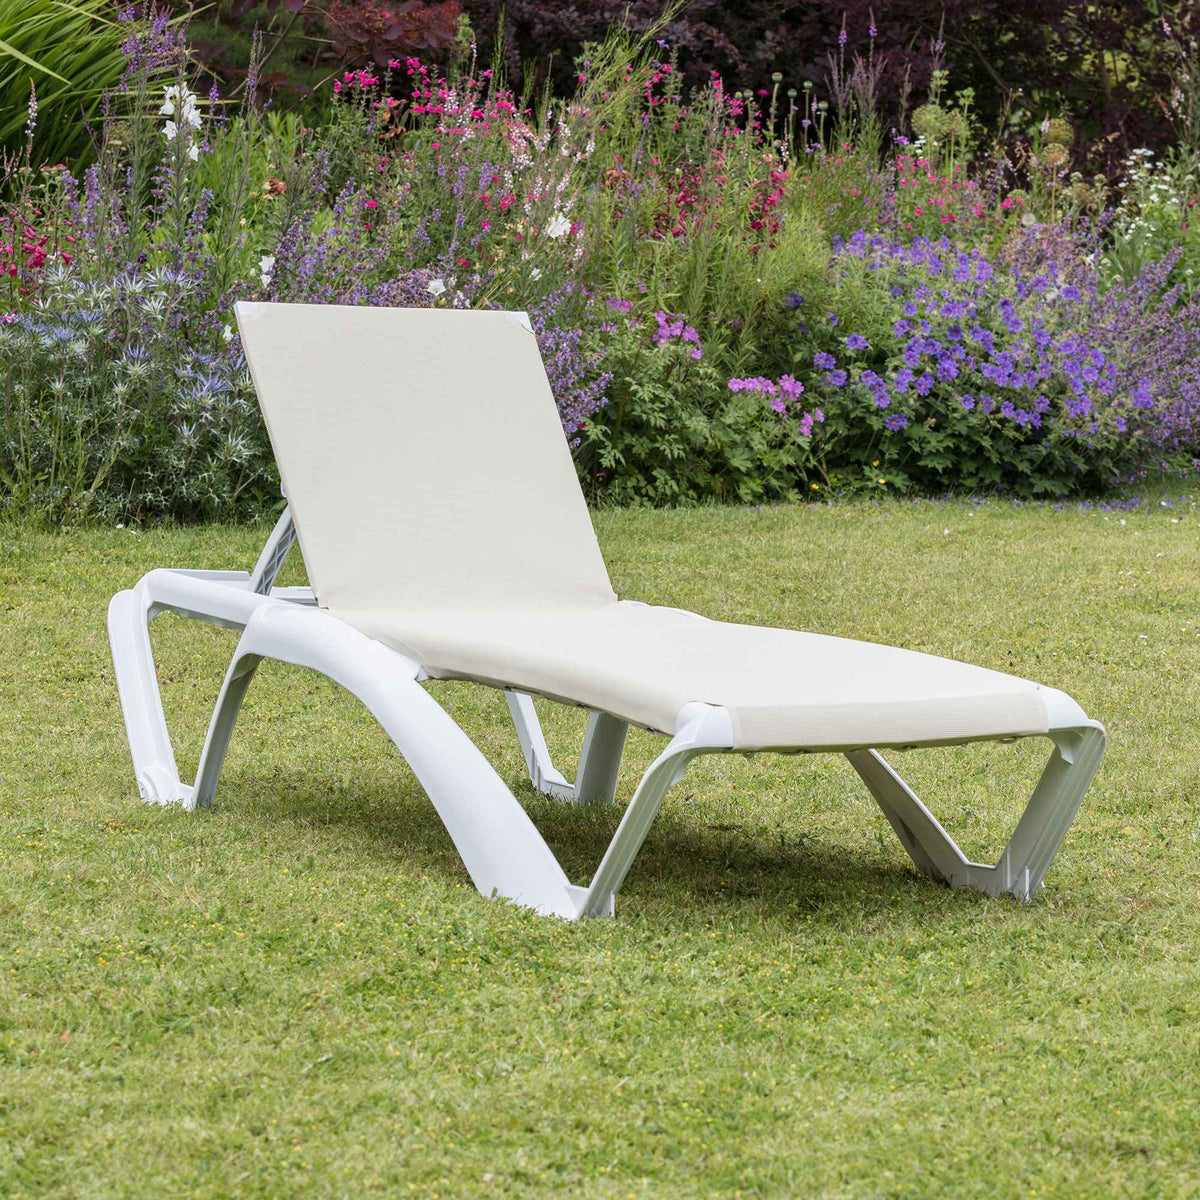 Resol Marina Sun Lounger - White Frame with Natural Canvas Material